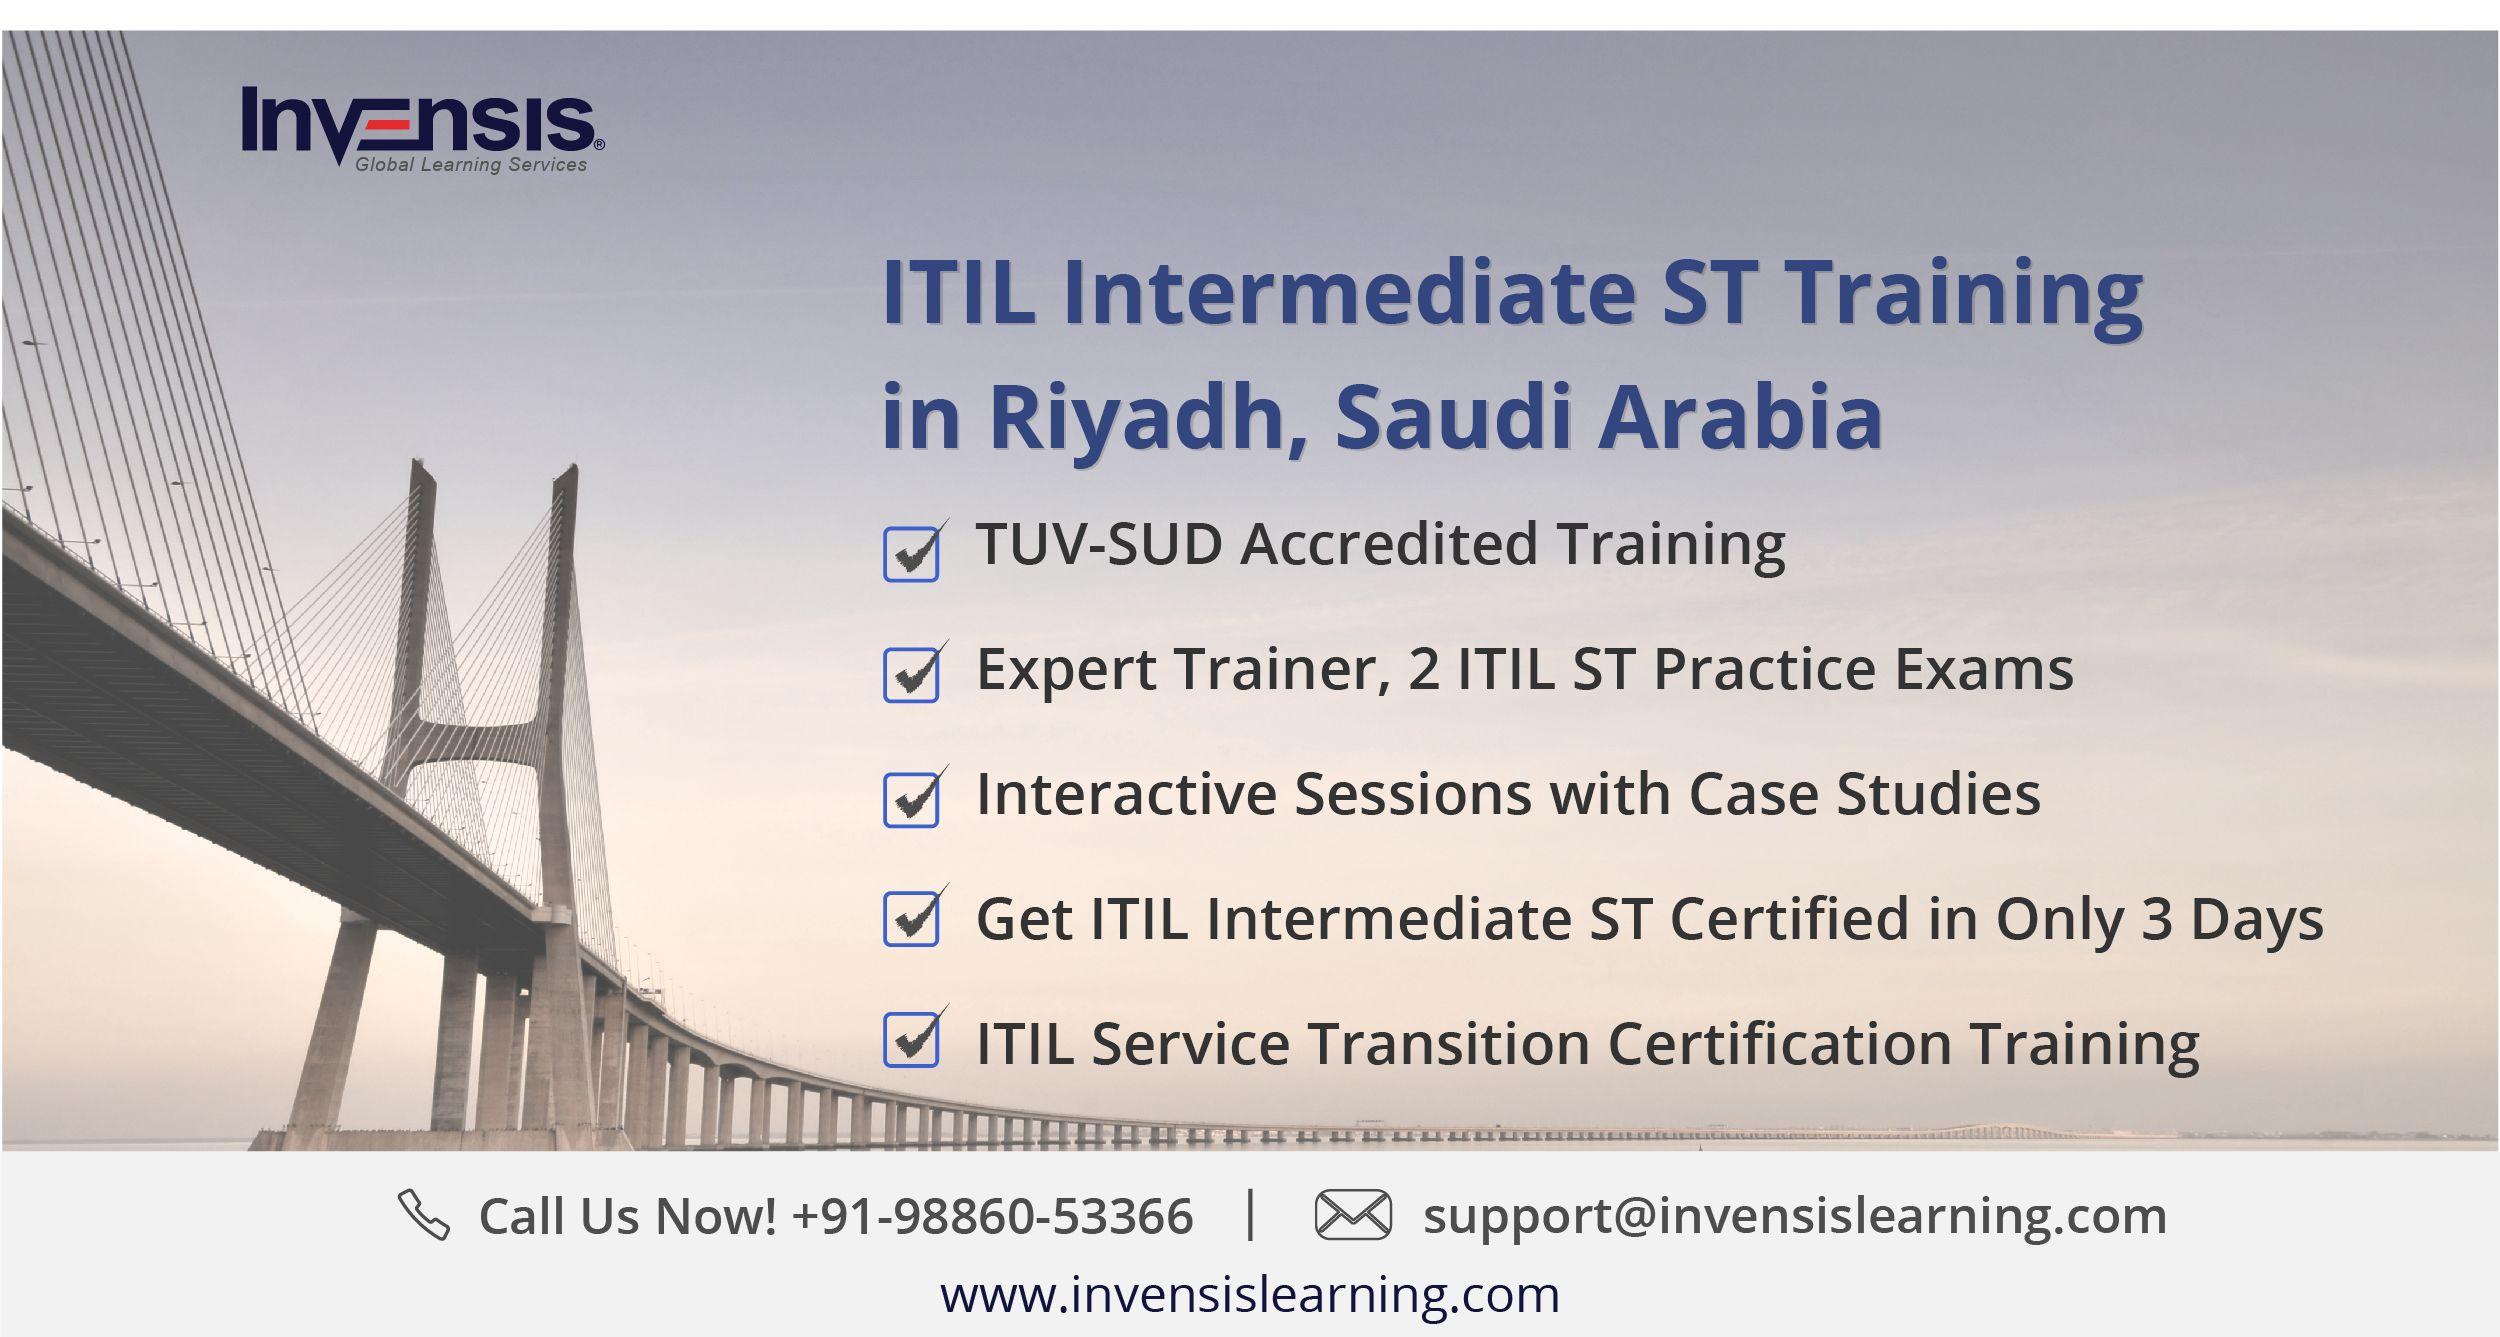 Itilintermediate service transition st certification training benefits of taking the course tuv sud accredited course content expert trainer 2 itil service operation mock tests interactive sessions 1betcityfo Images